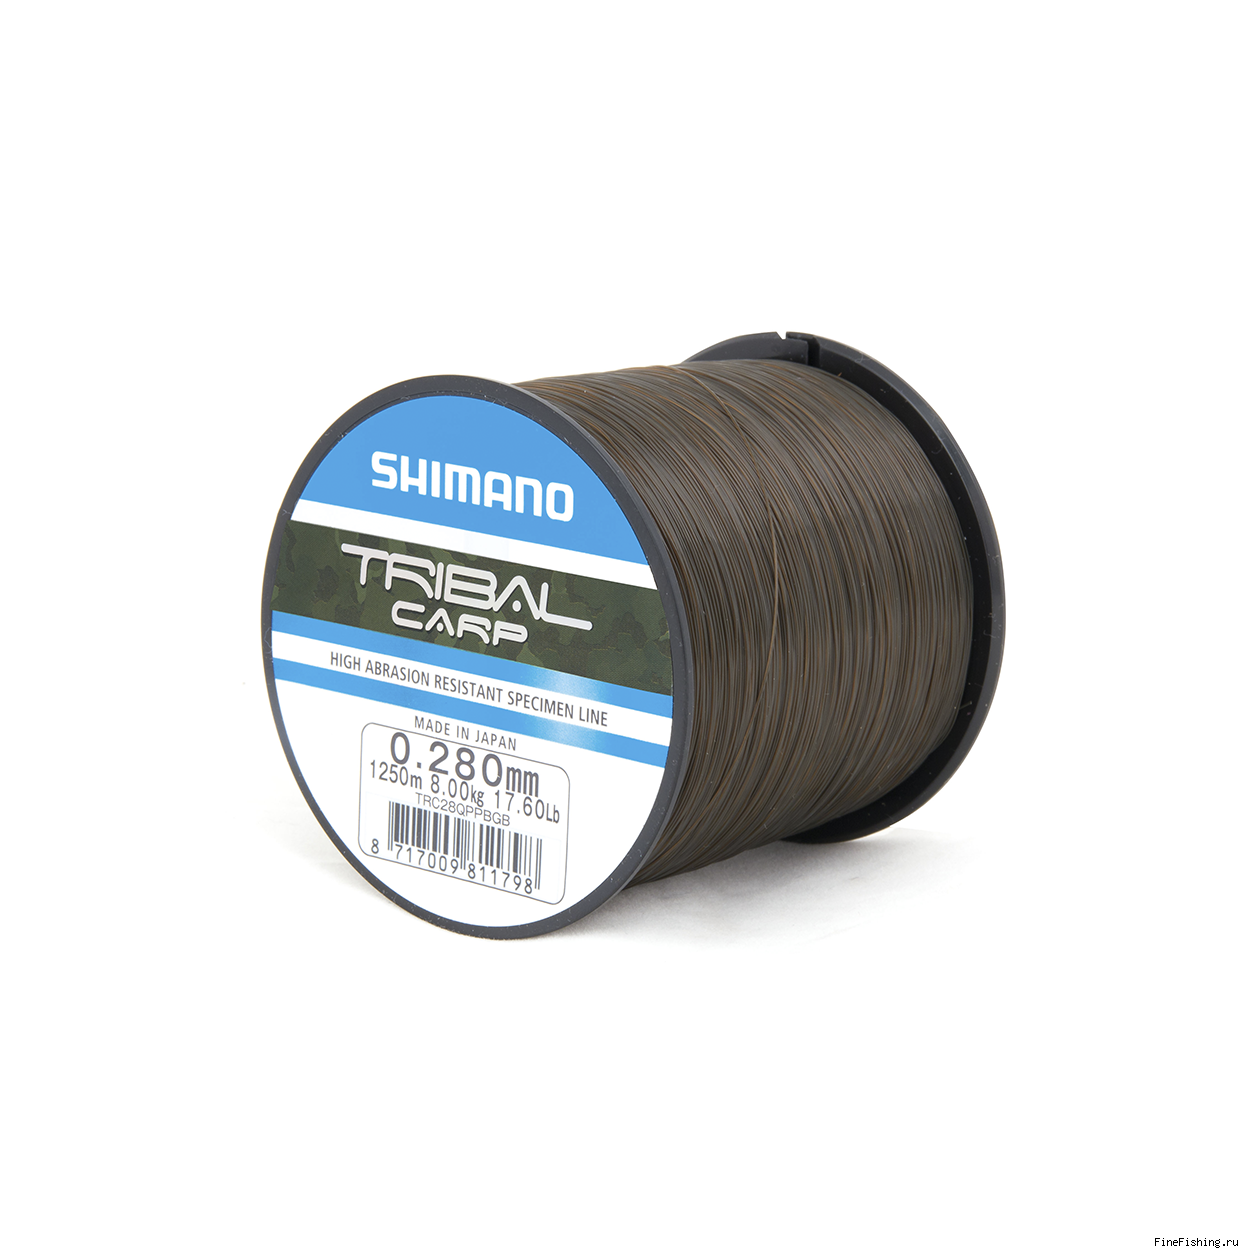 Леска Shimano Tribal Carp 1250m 0,28mm QP